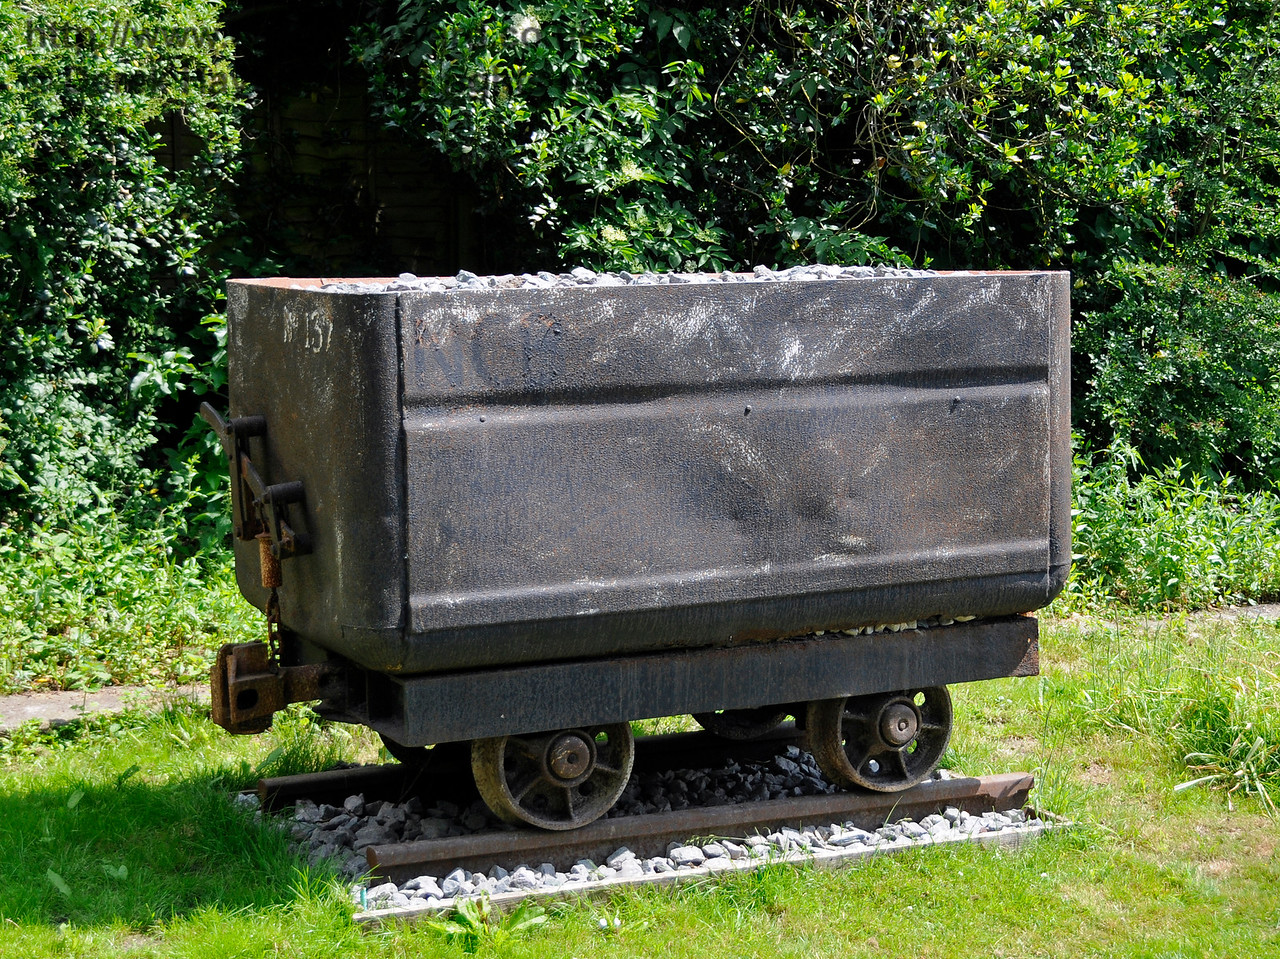 Industrial heritage items on display at Shepherdswell Station, East Kent Railway.  If you look very closely you can just see NCB (National Coal Board) on the top left corner of the truck.  17.06.2015  12763